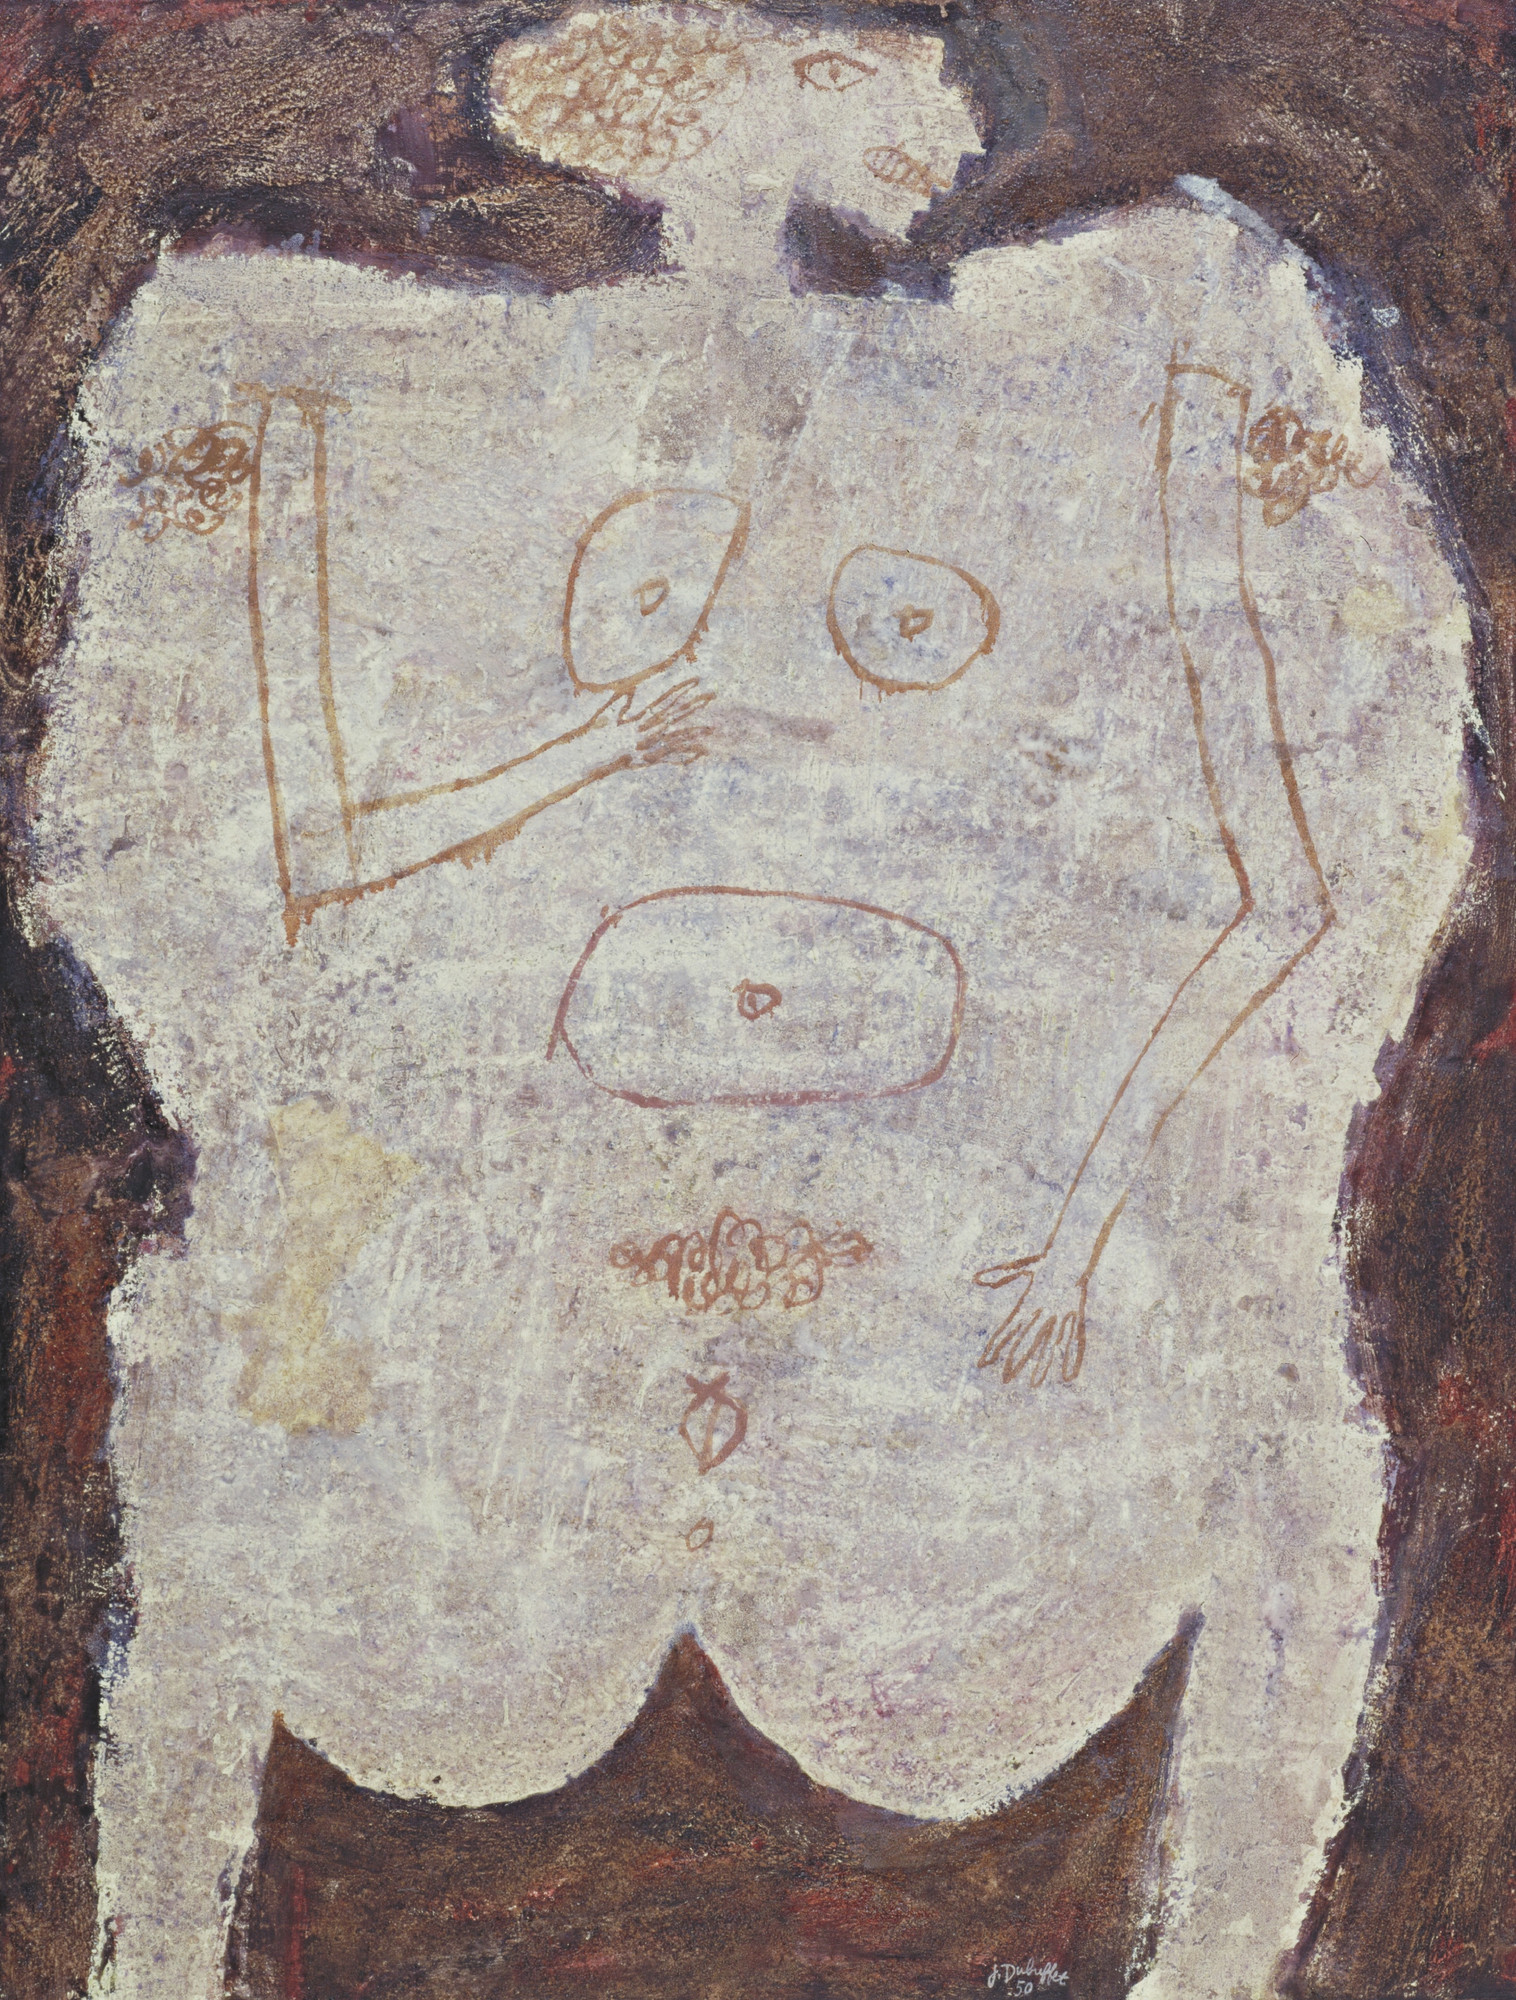 Jean Dubuffet. The Jewish Woman. October 1950